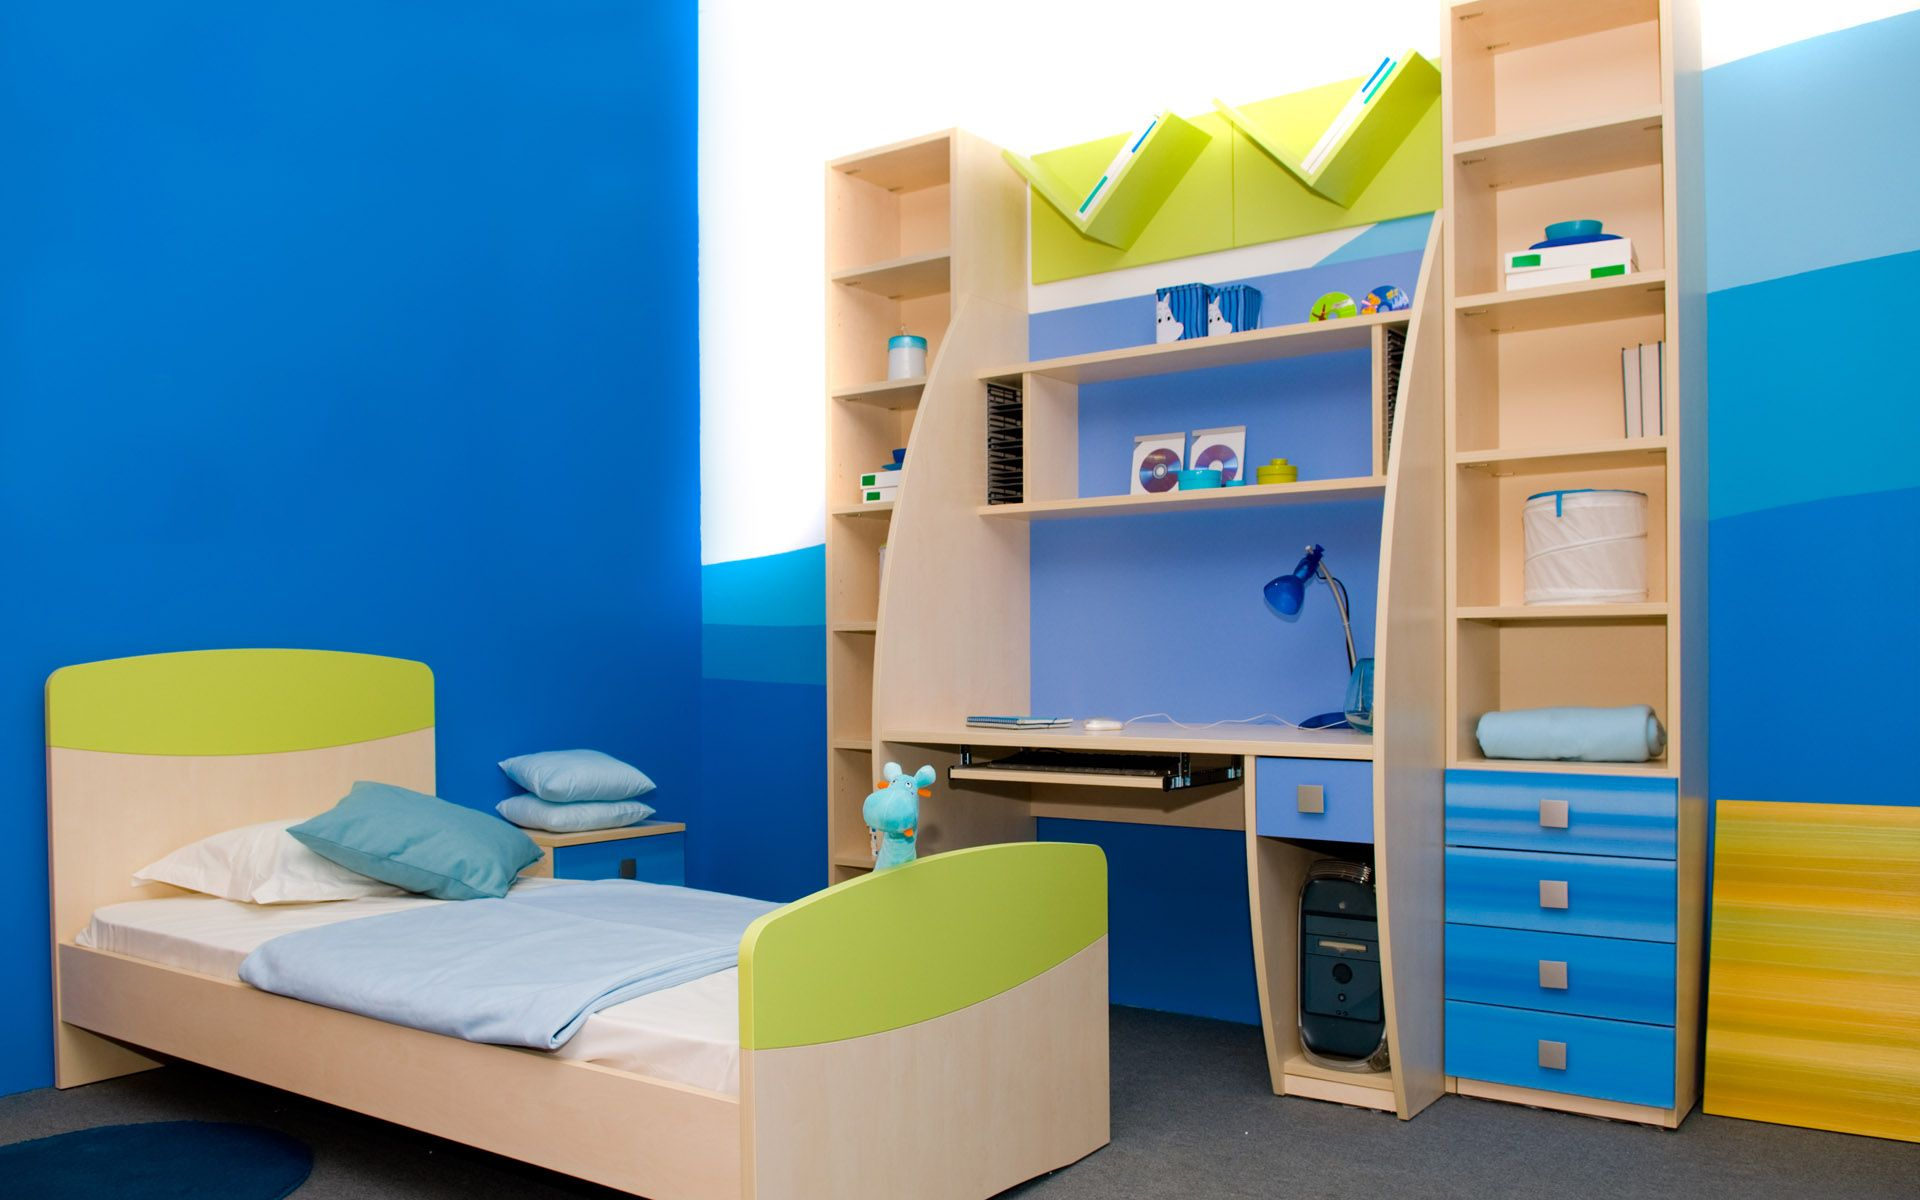 28 elegant kids room ideas full of colors